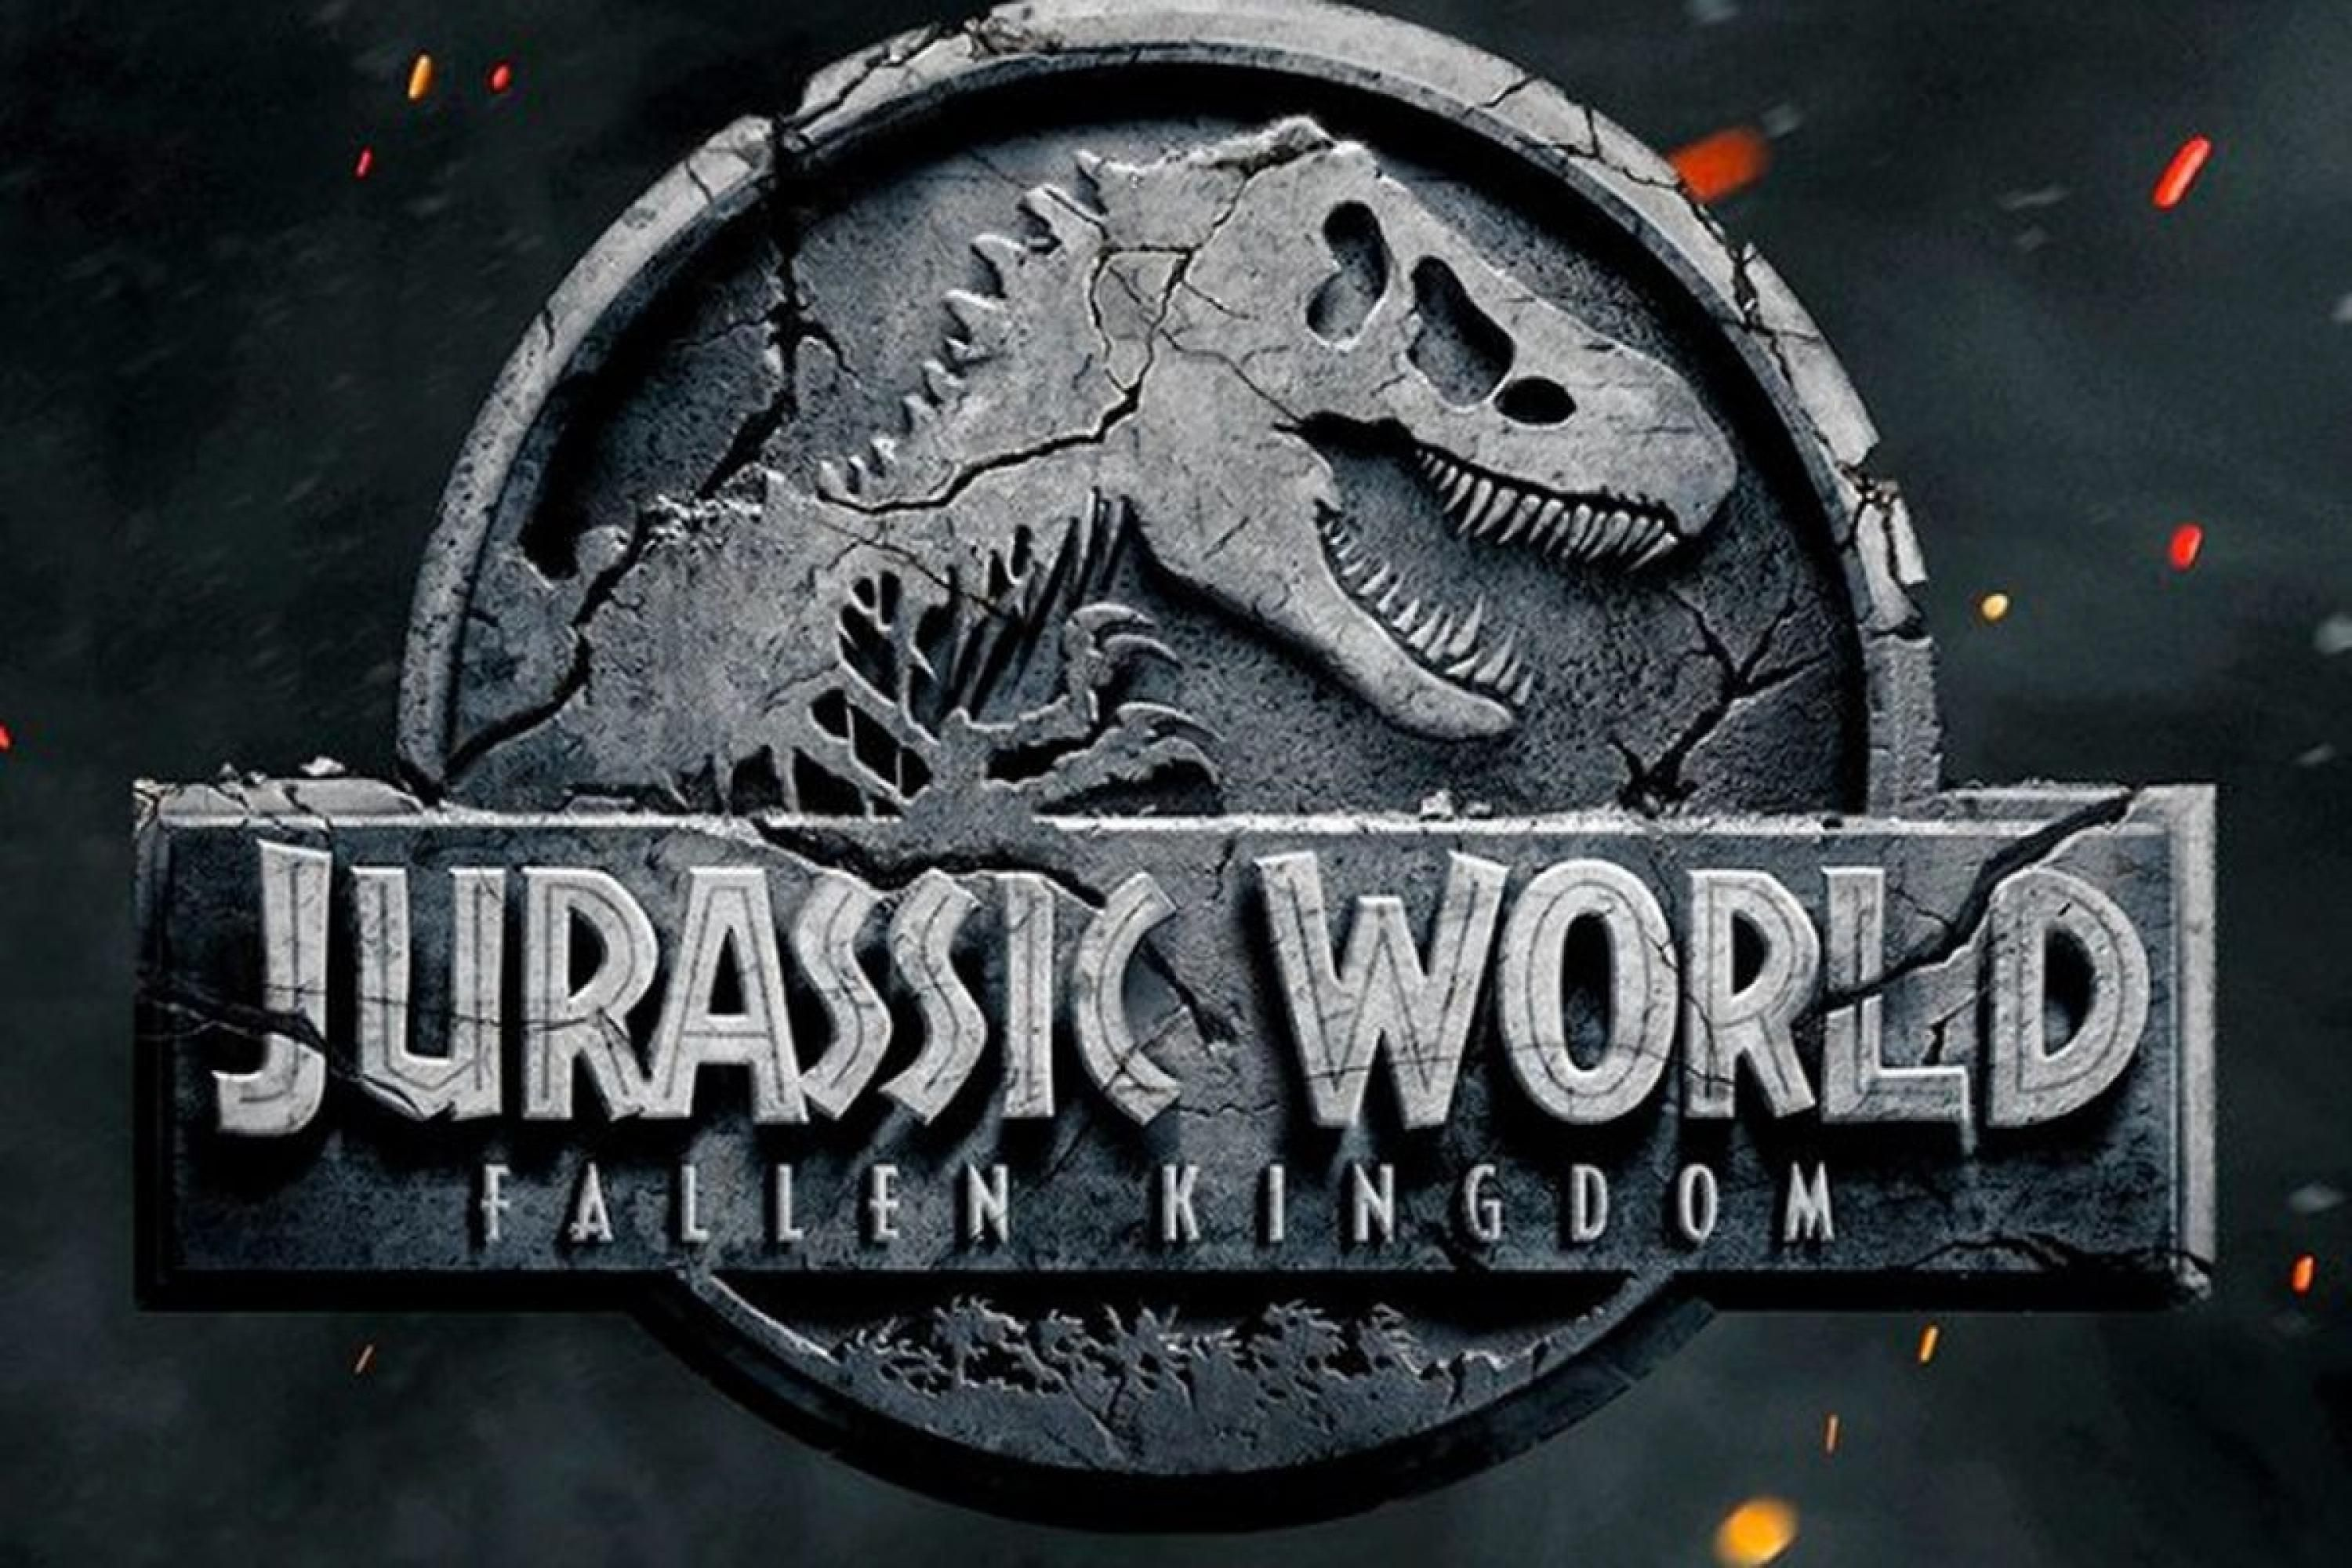 jurassic world fallen kingdom hd wallpaper